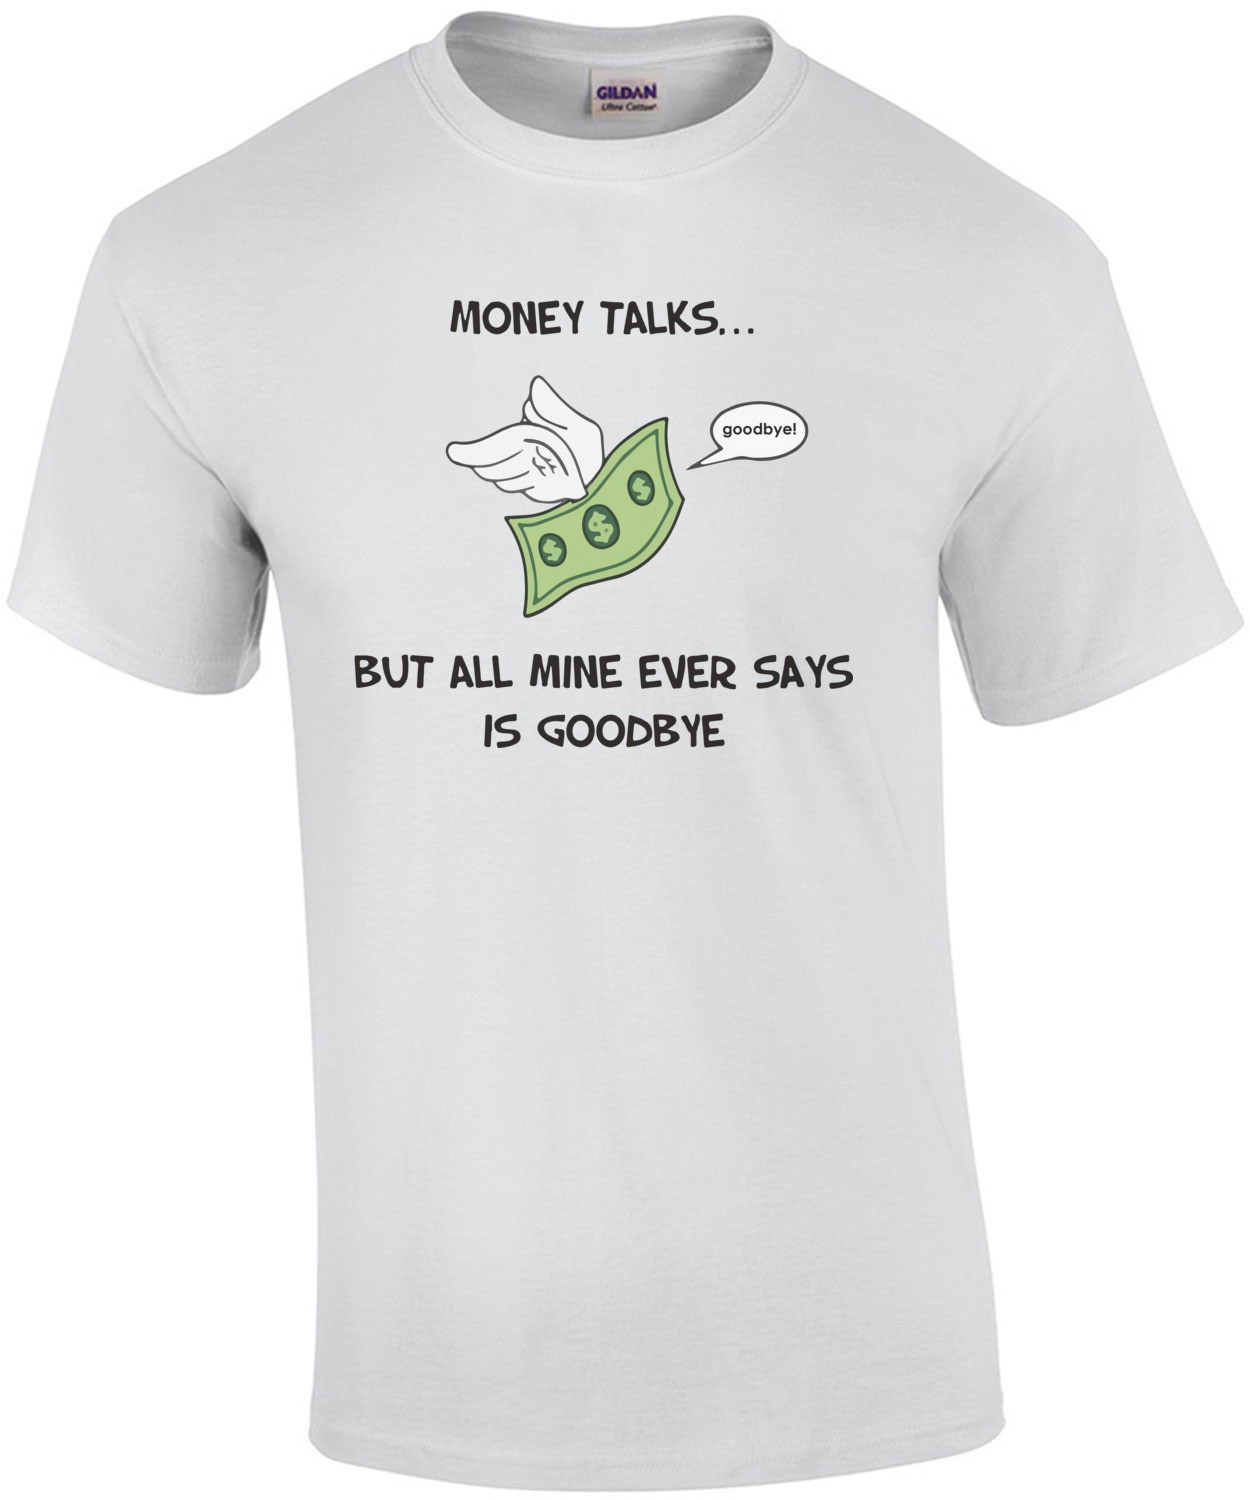 Money Talks... But all mine ever says is goodbye. Funny T-Shirt